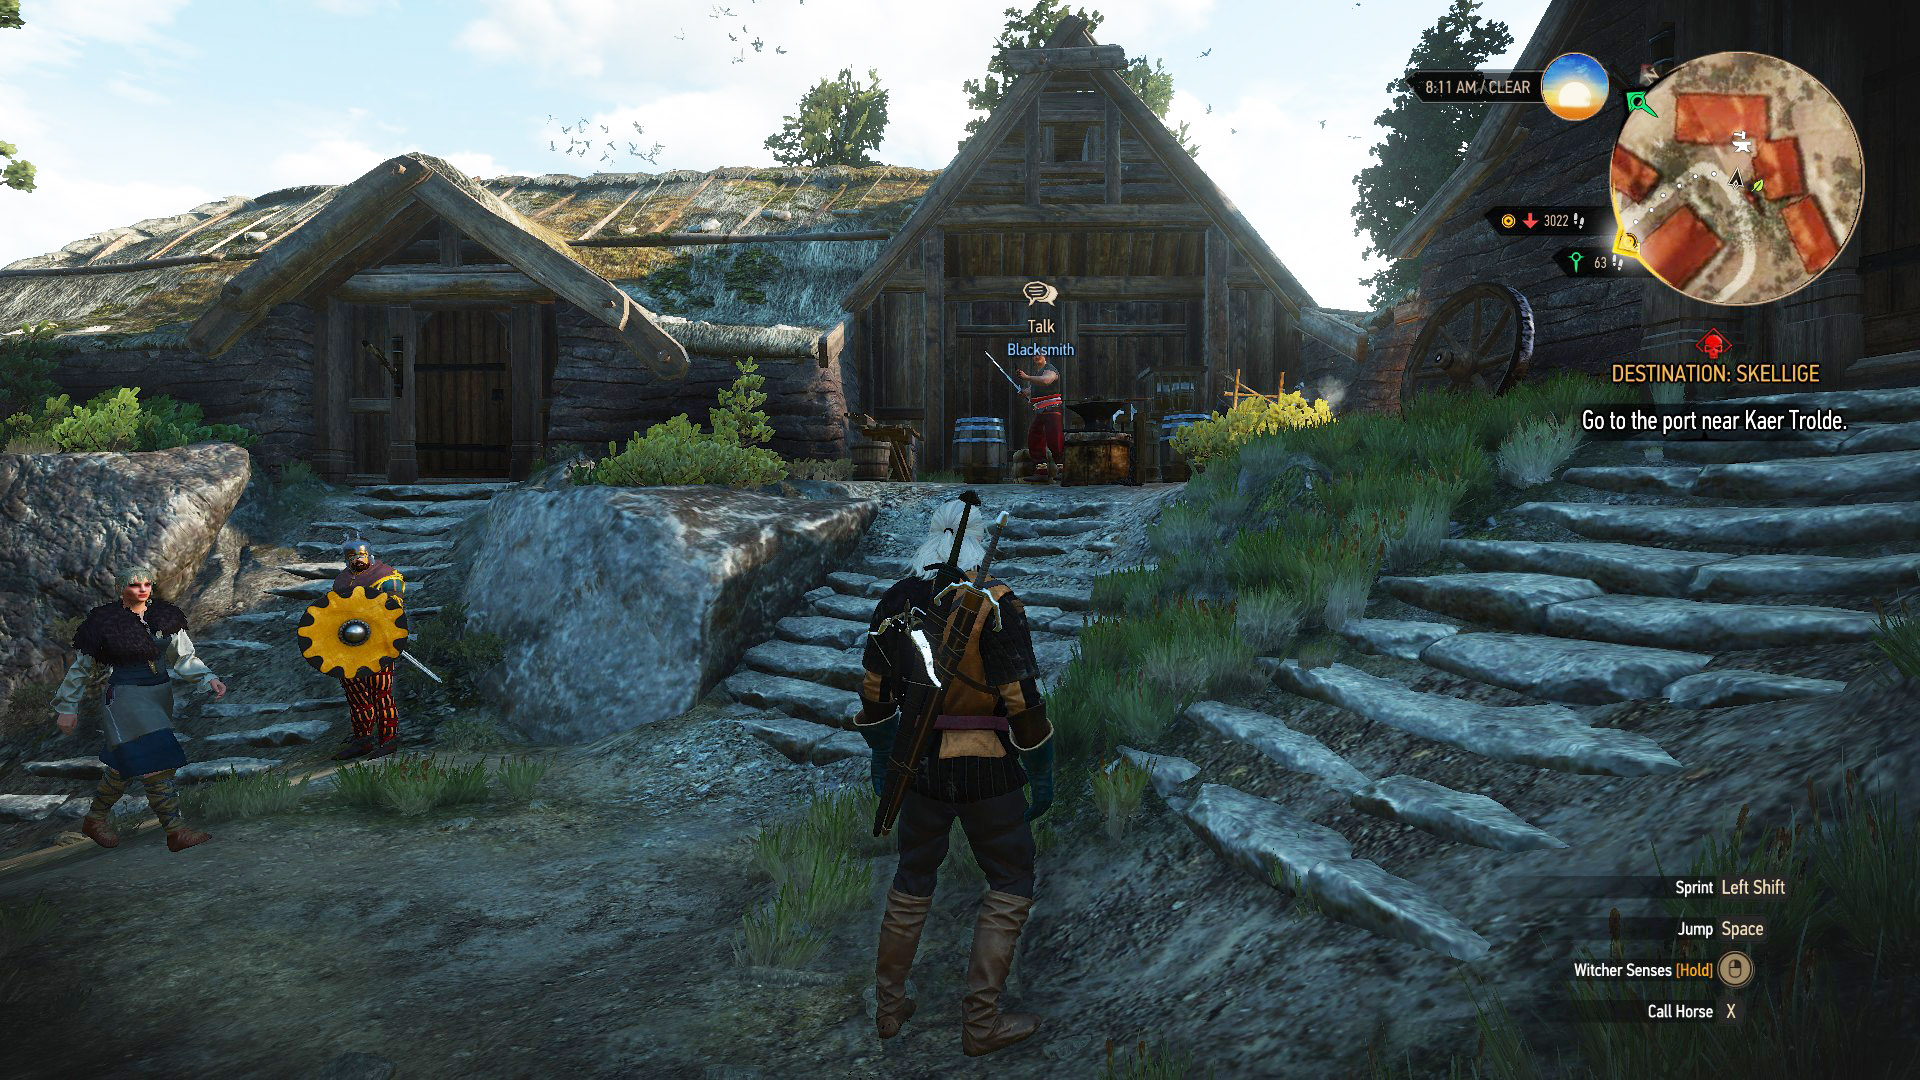 The Best 3d Wallpaper Blacksmith Locations The Witcher 3